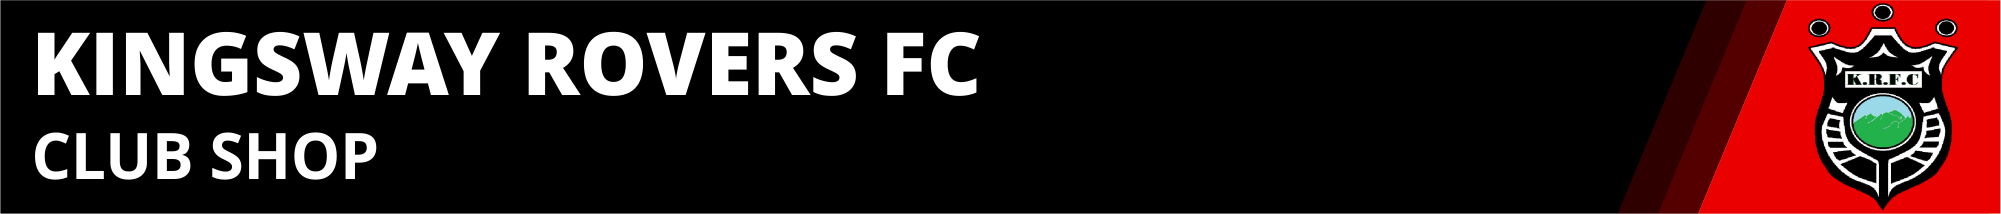 kingsway-rovers-fc-club-shop-banner.png